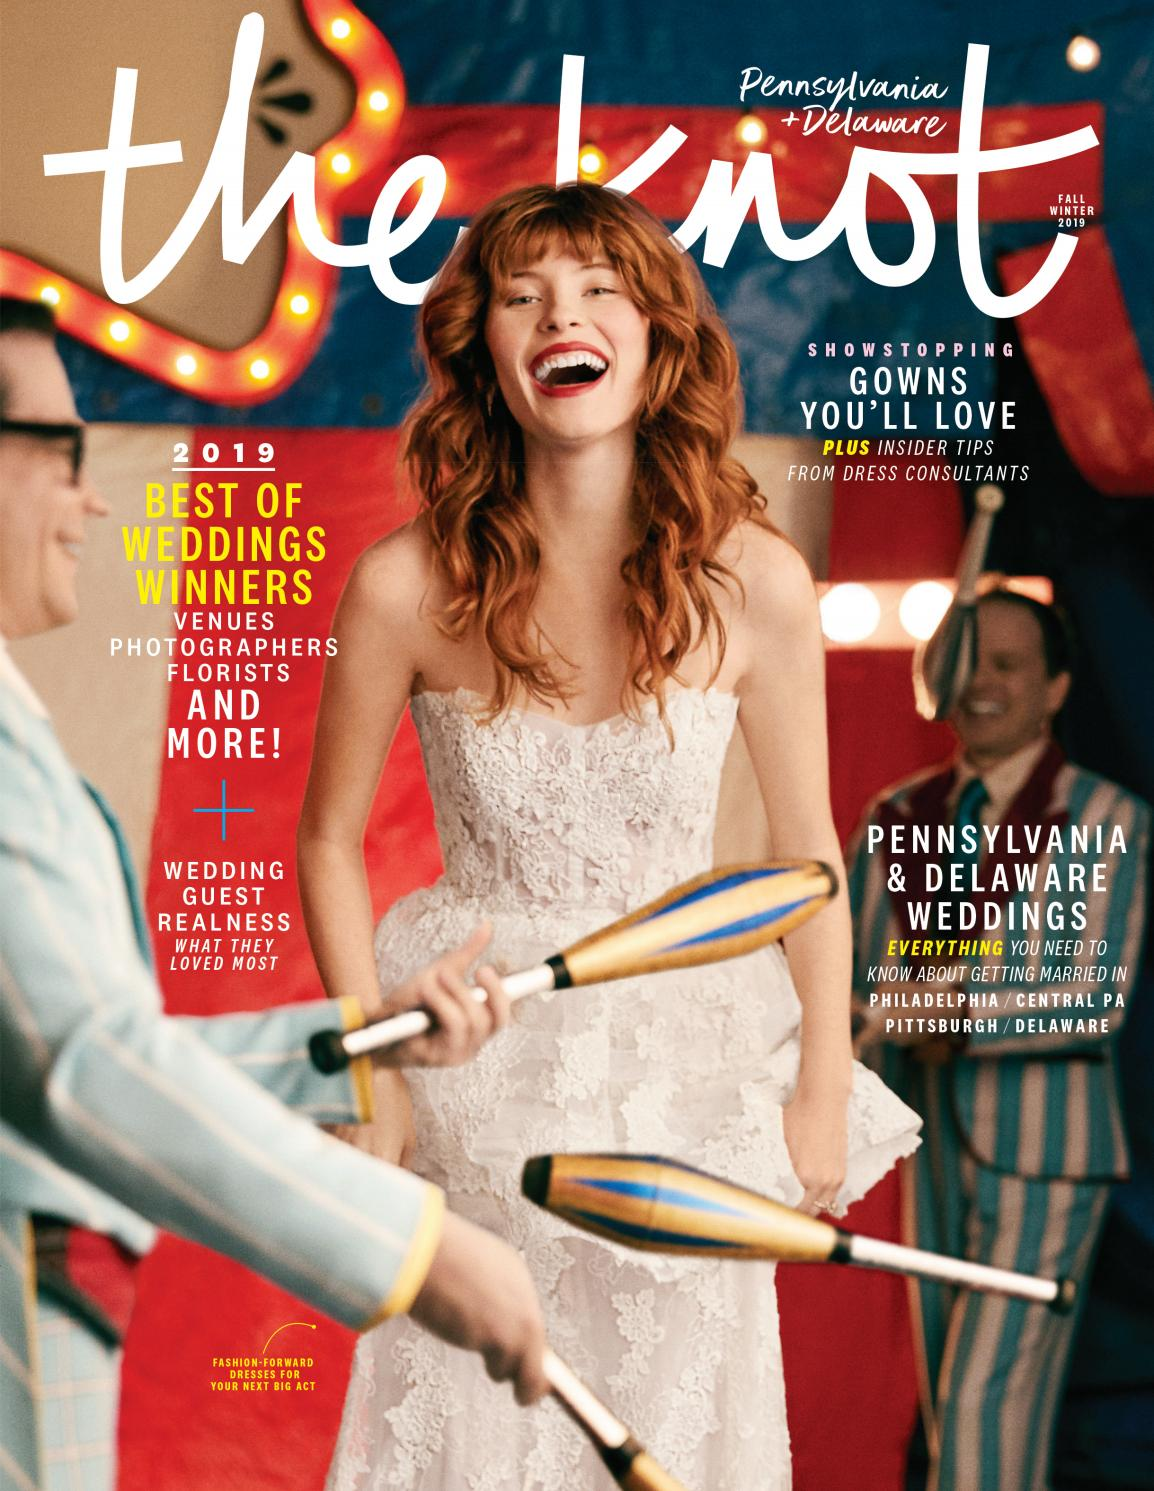 The Knot Pennsylvania Fall Winter 2019 By The Knot Pennsylvania